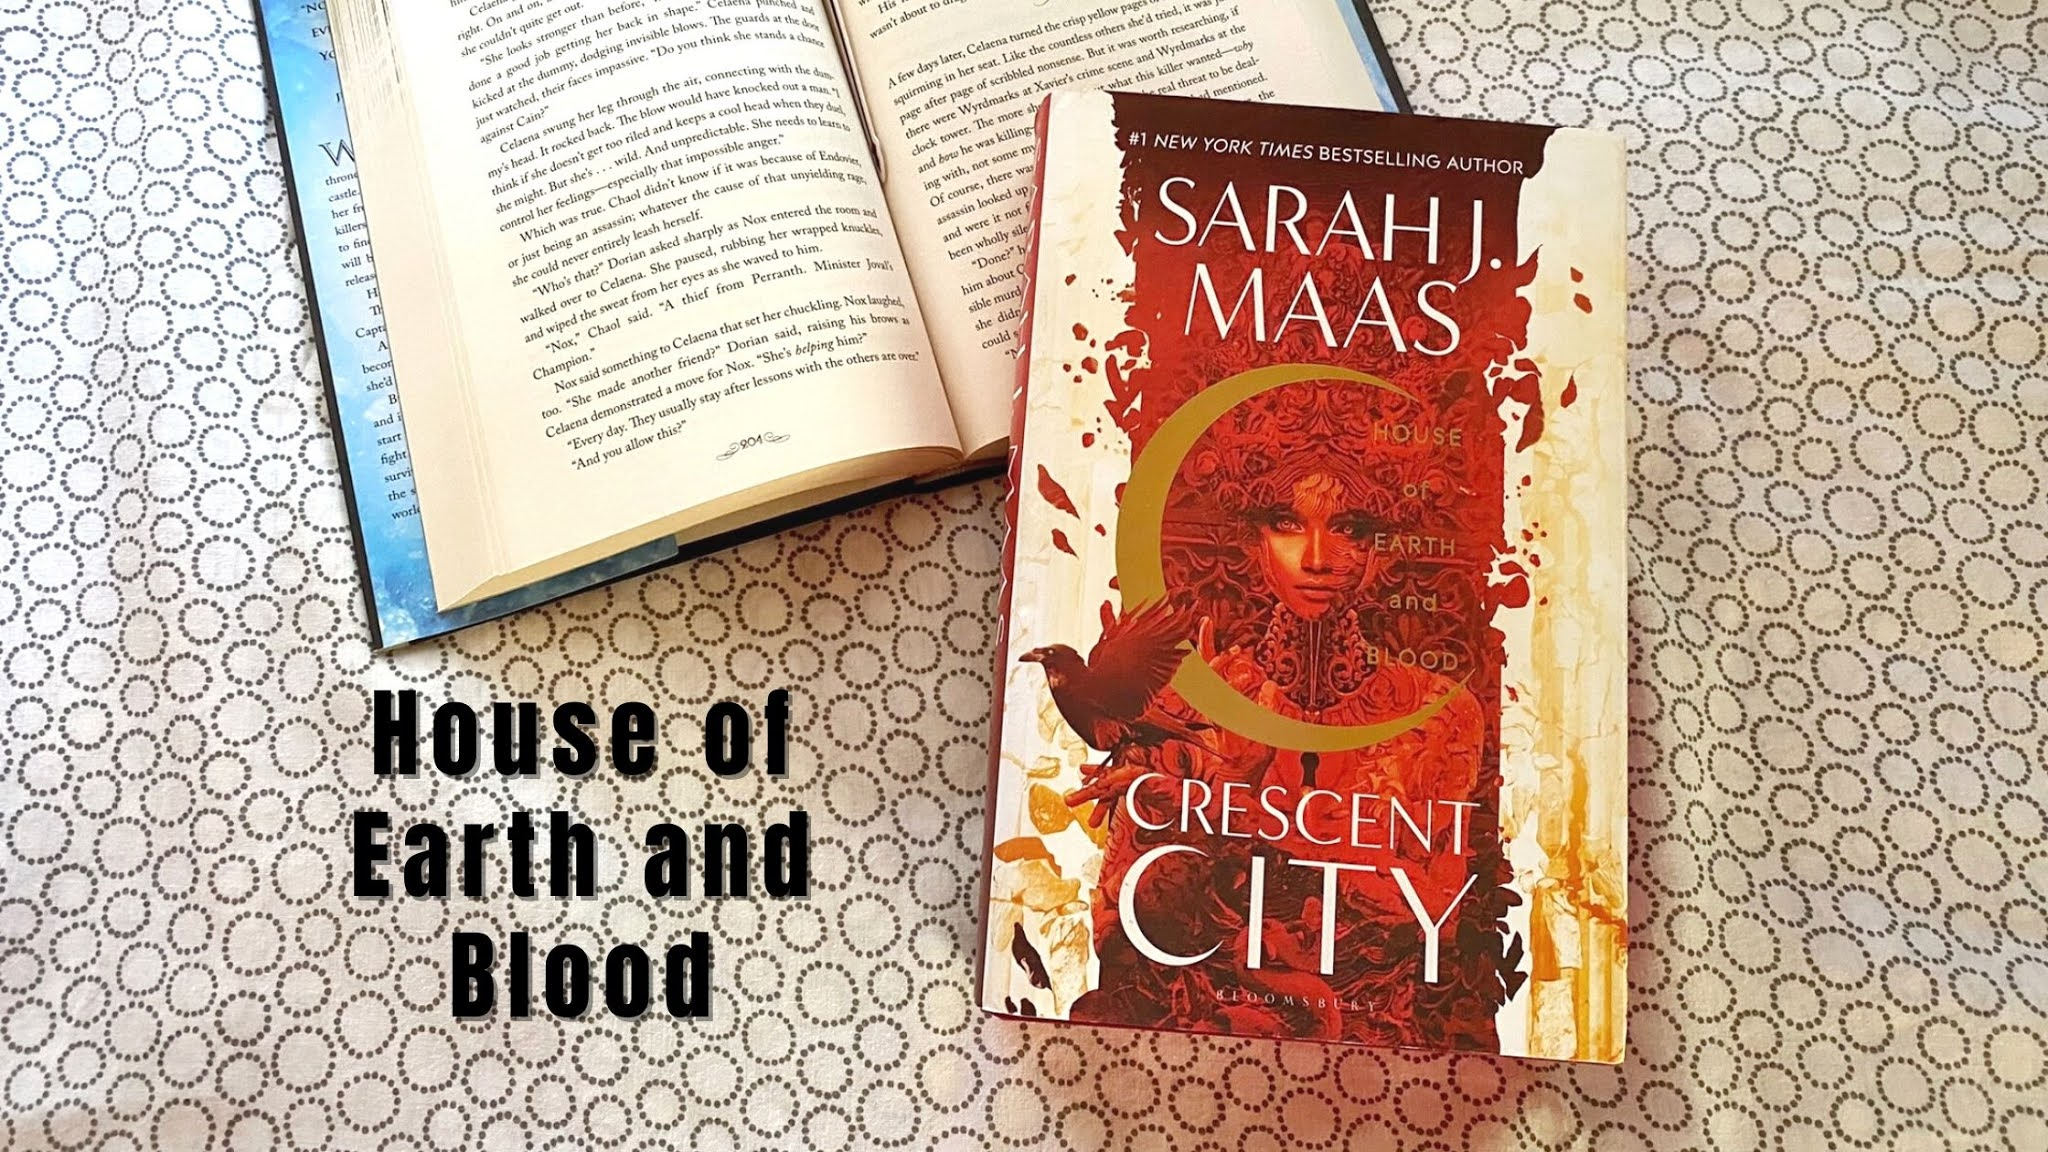 House of Earth and Blood (Crescent City 1) by Sarah J. Maas